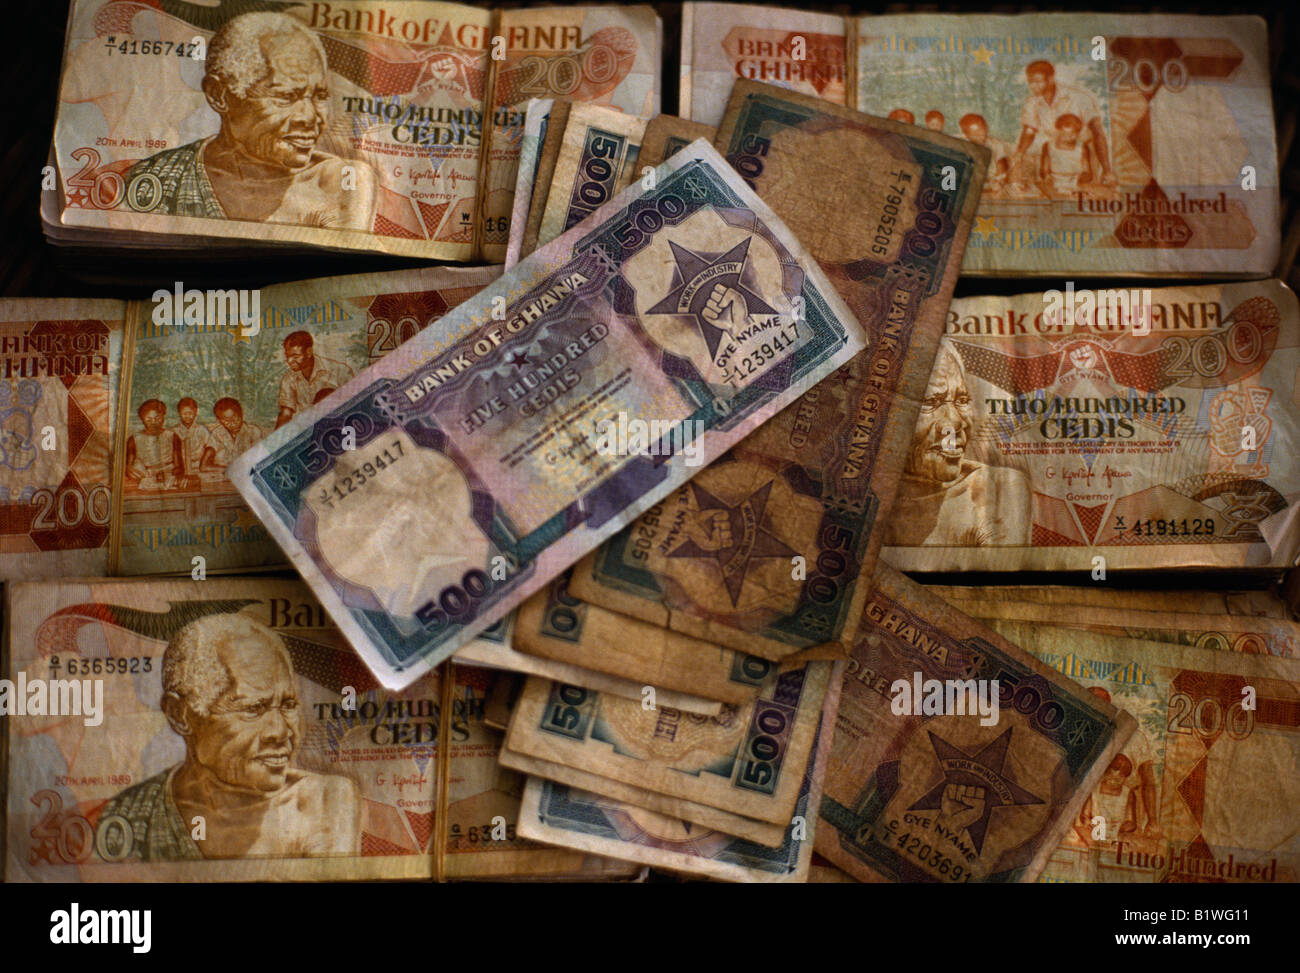 Ghana West Africa Money Ghanaian Currency Cedi Bank Notes